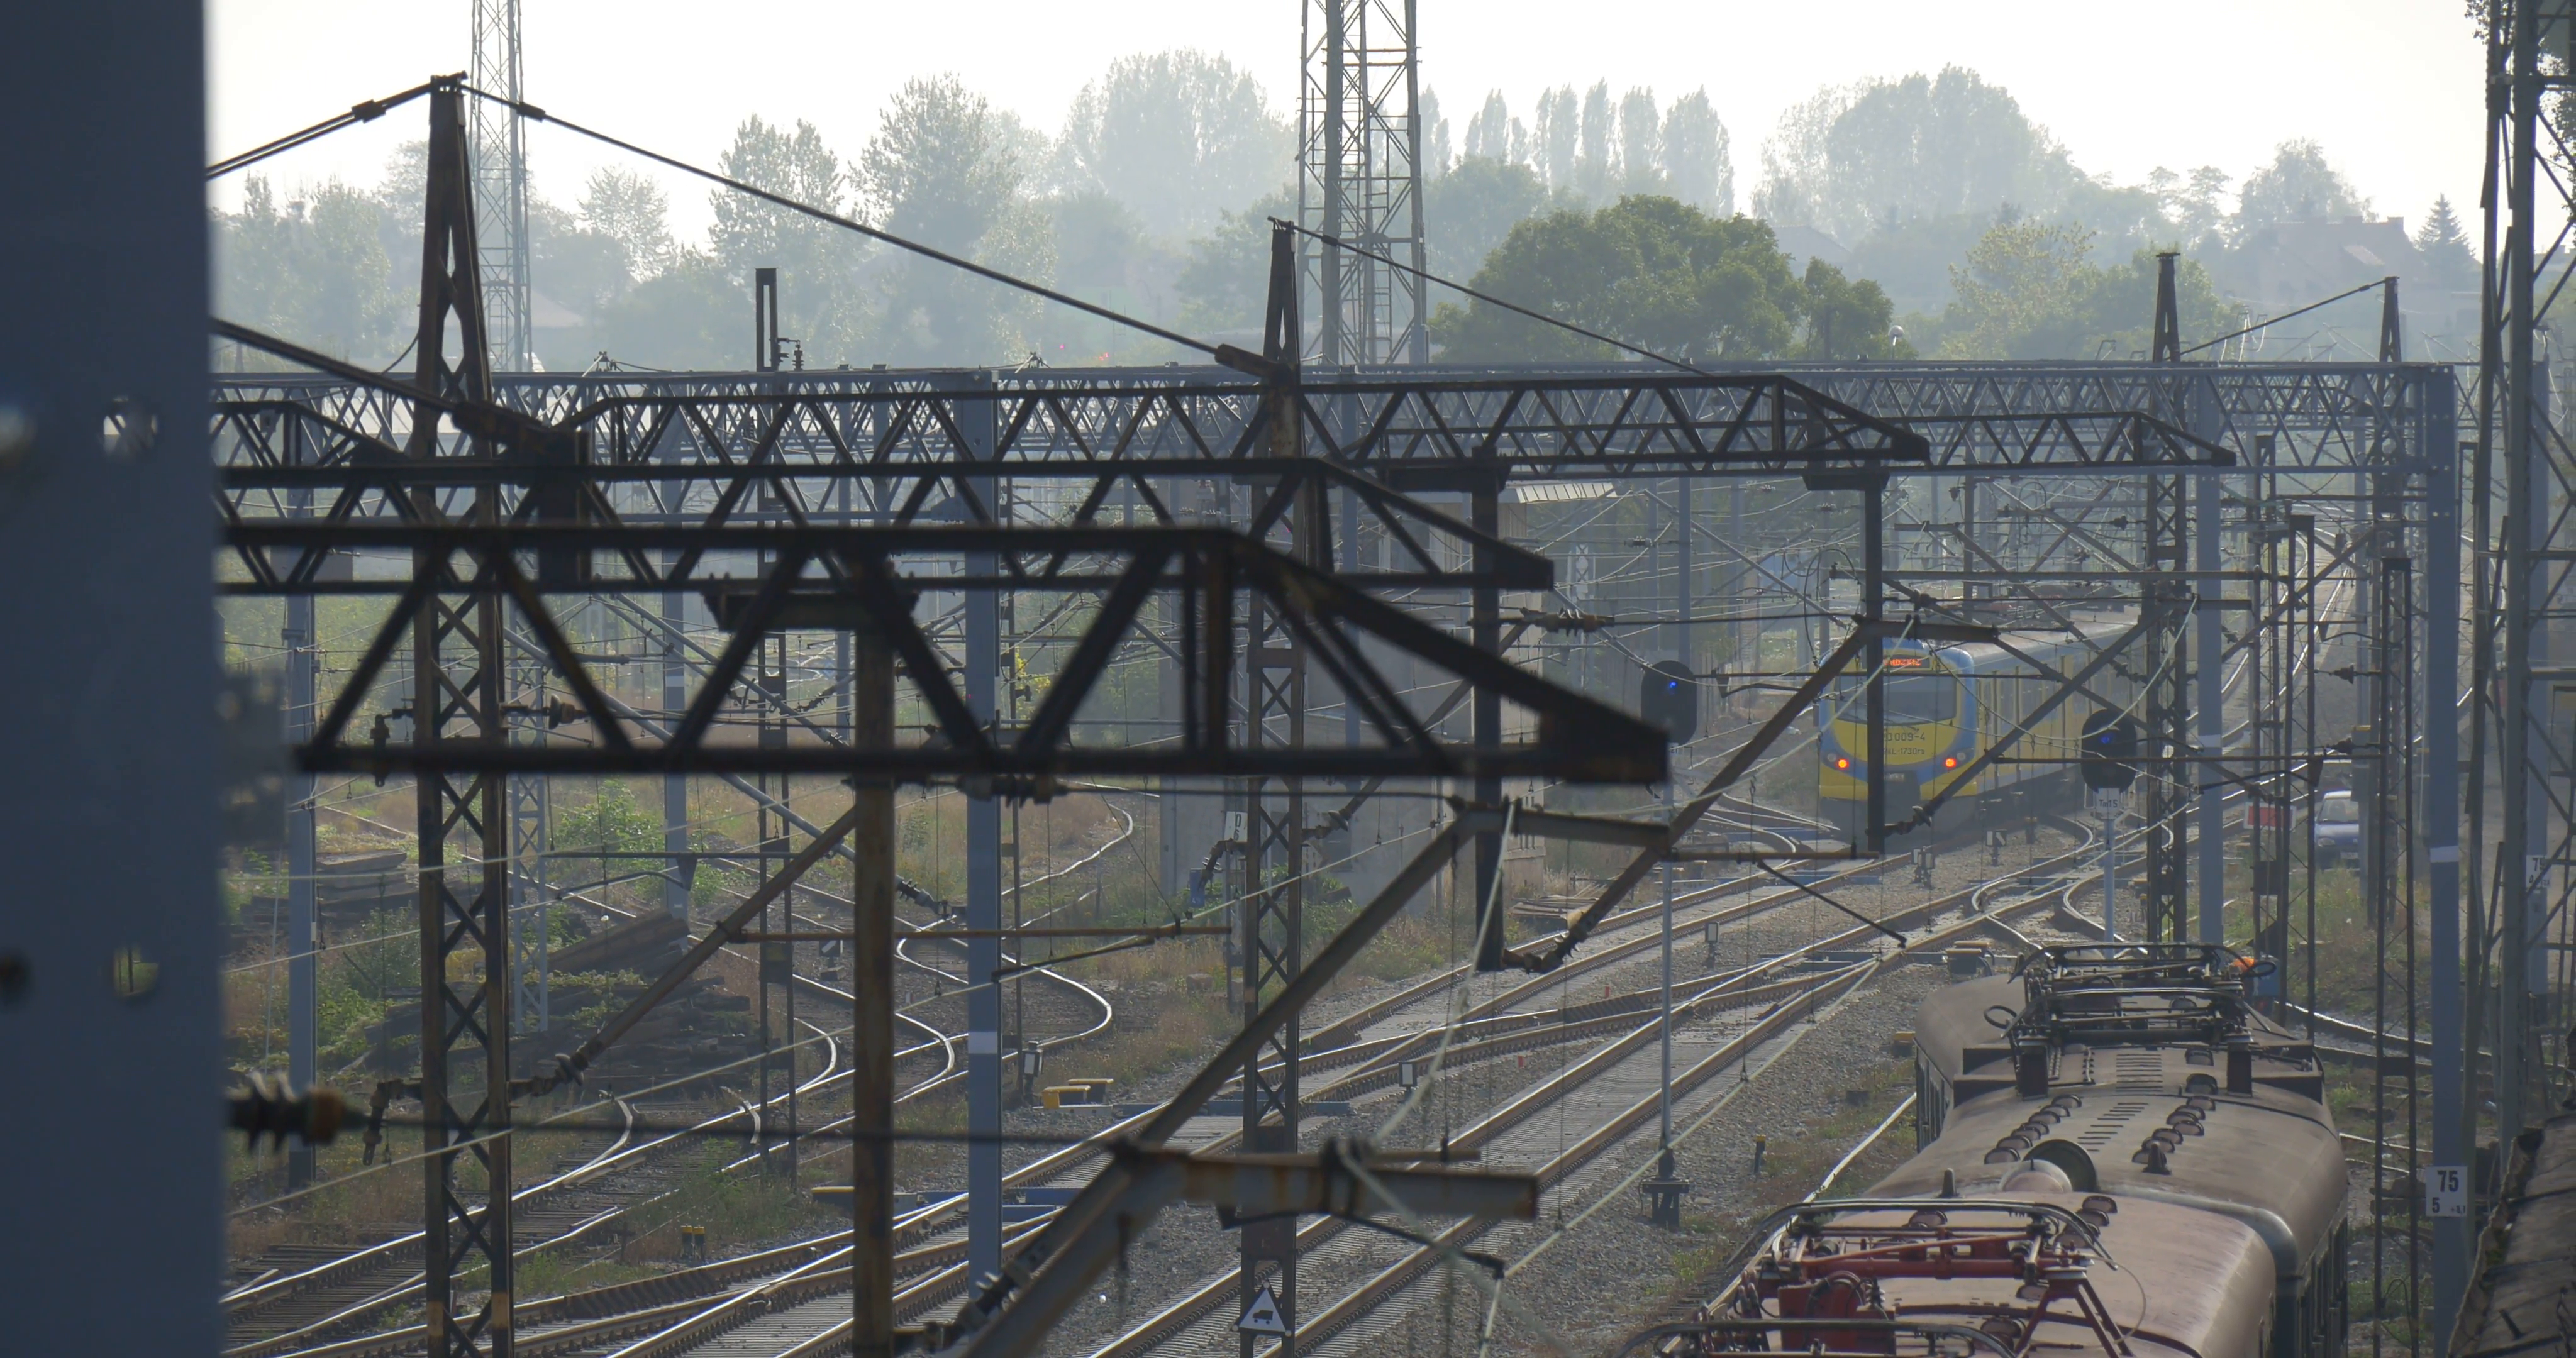 Supports And Lines Of The Railroad Contact Network Railway Tracks ...